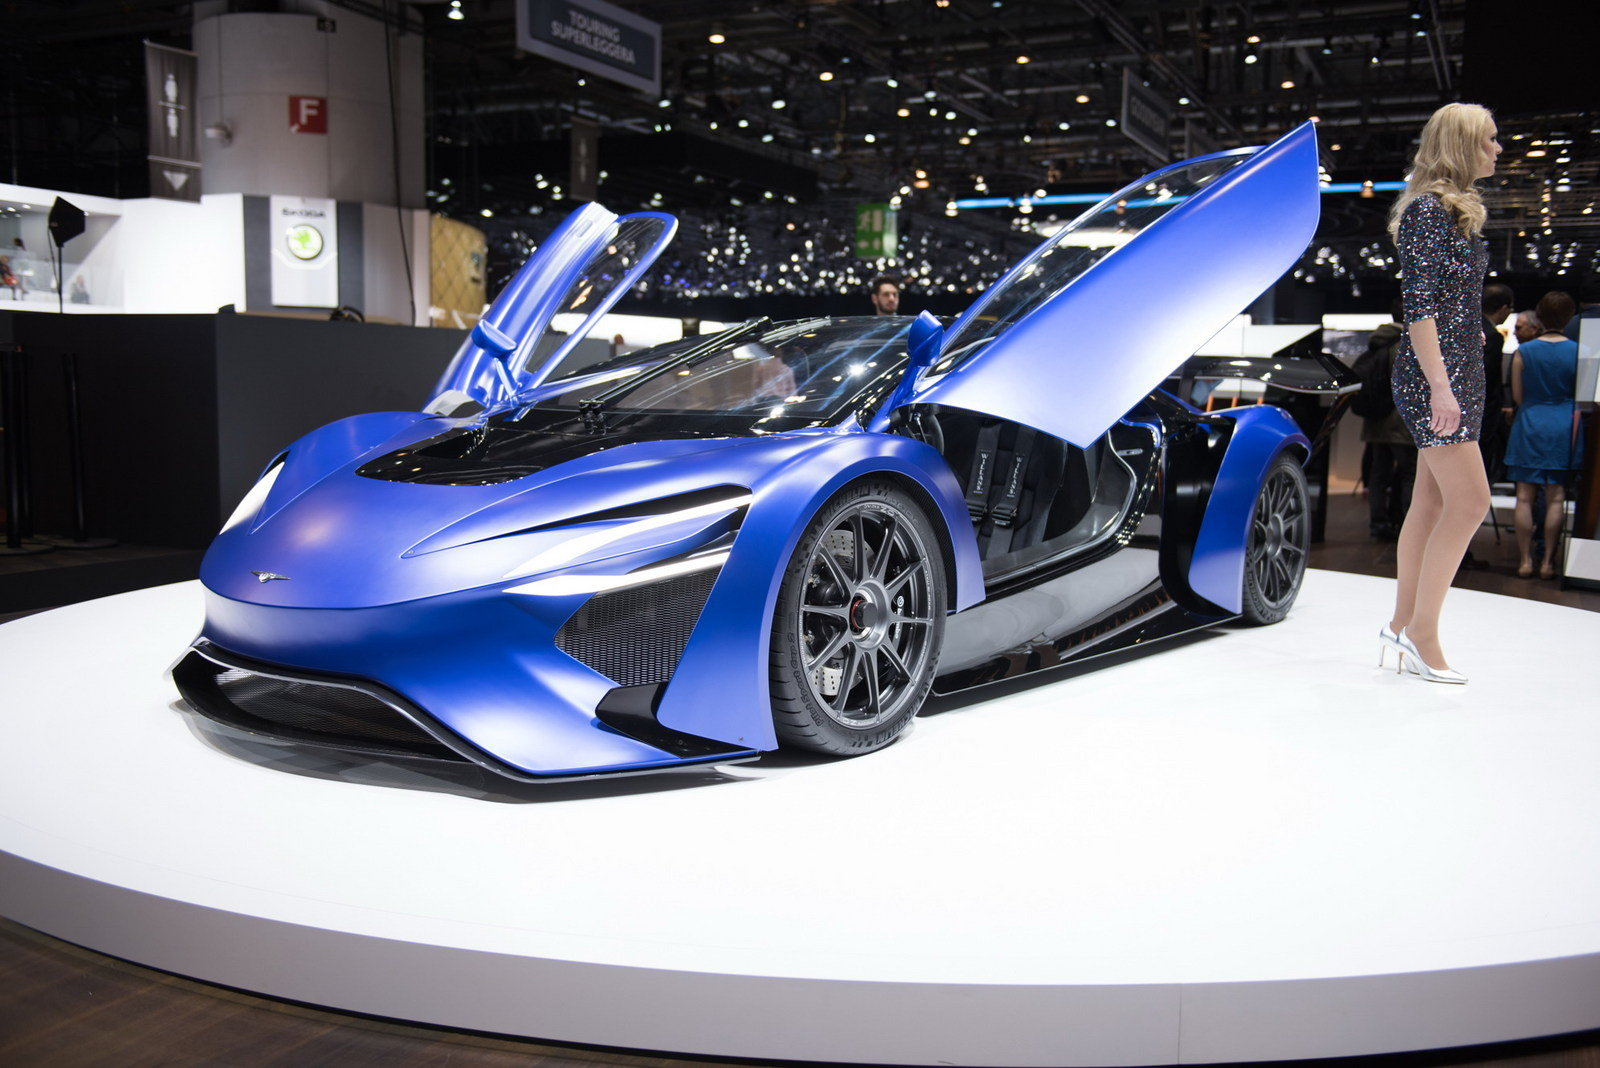 2016 Techrules At96 Trev Supercar Concept: 2016 Techrules AT96 TREV - Picture 668532